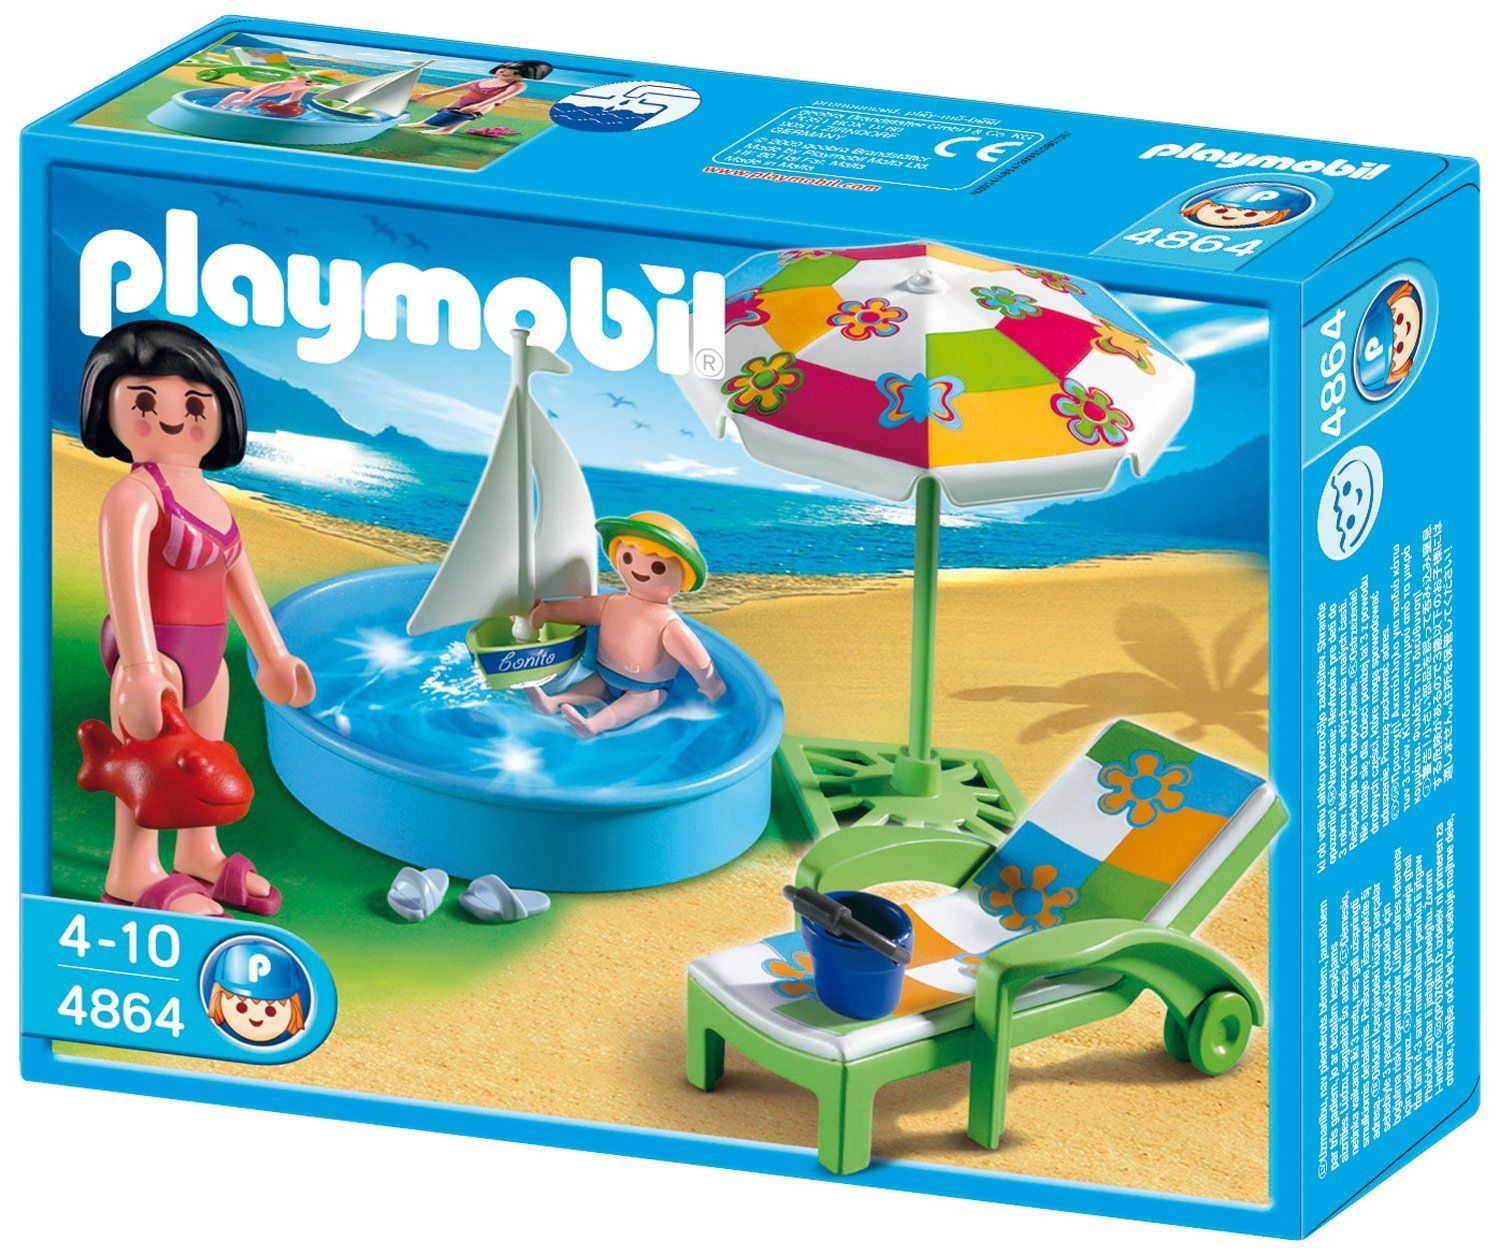 playmobil 4859 family camper: amazon.co.uk: toys games | military